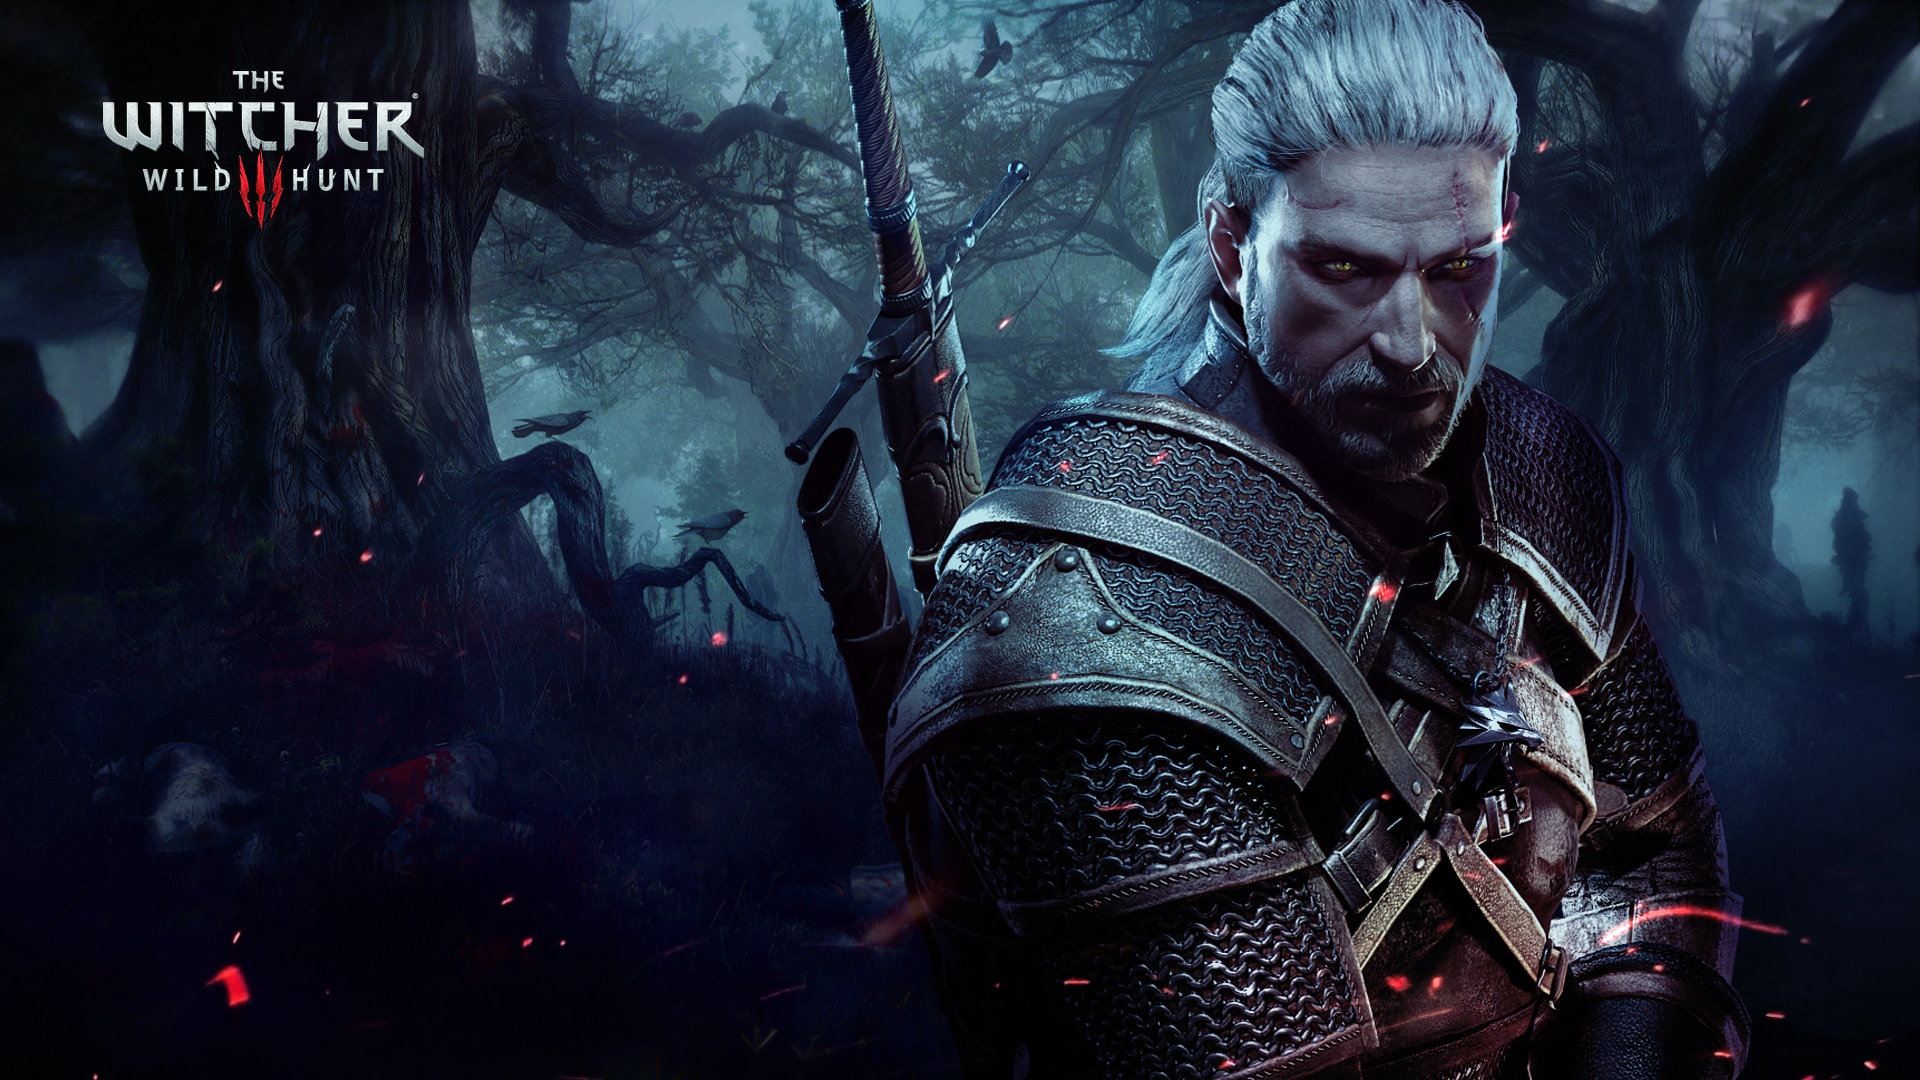 The Witcher  Wild Hunt Girl Wallpaper  Games HD Wallpapers 1920x1080